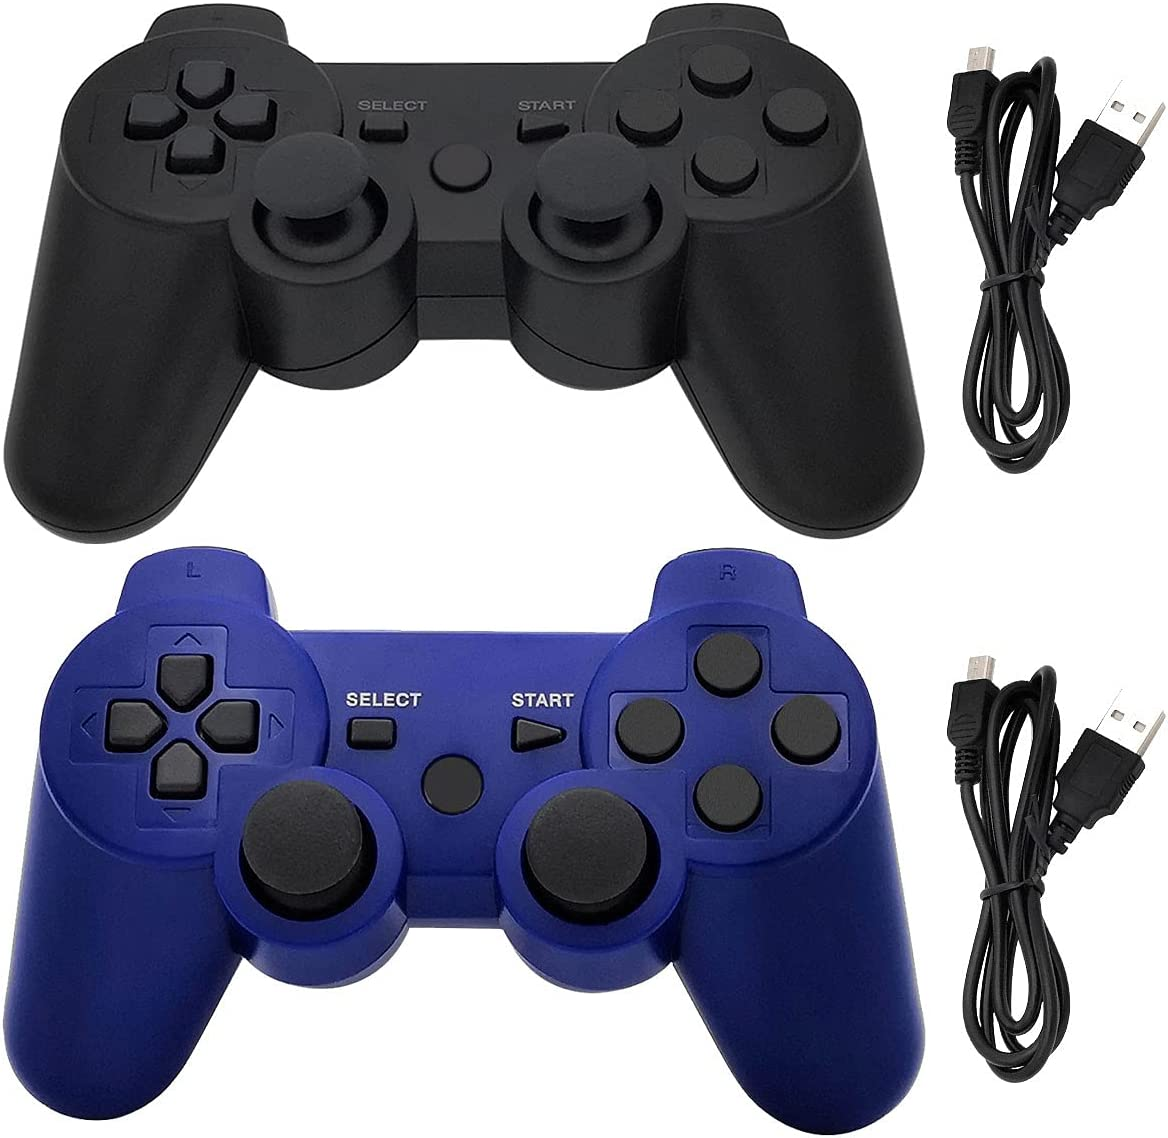 Ceozon PS3 High quality Louisville-Jefferson County Mall Controller Playstation 3 Wireless